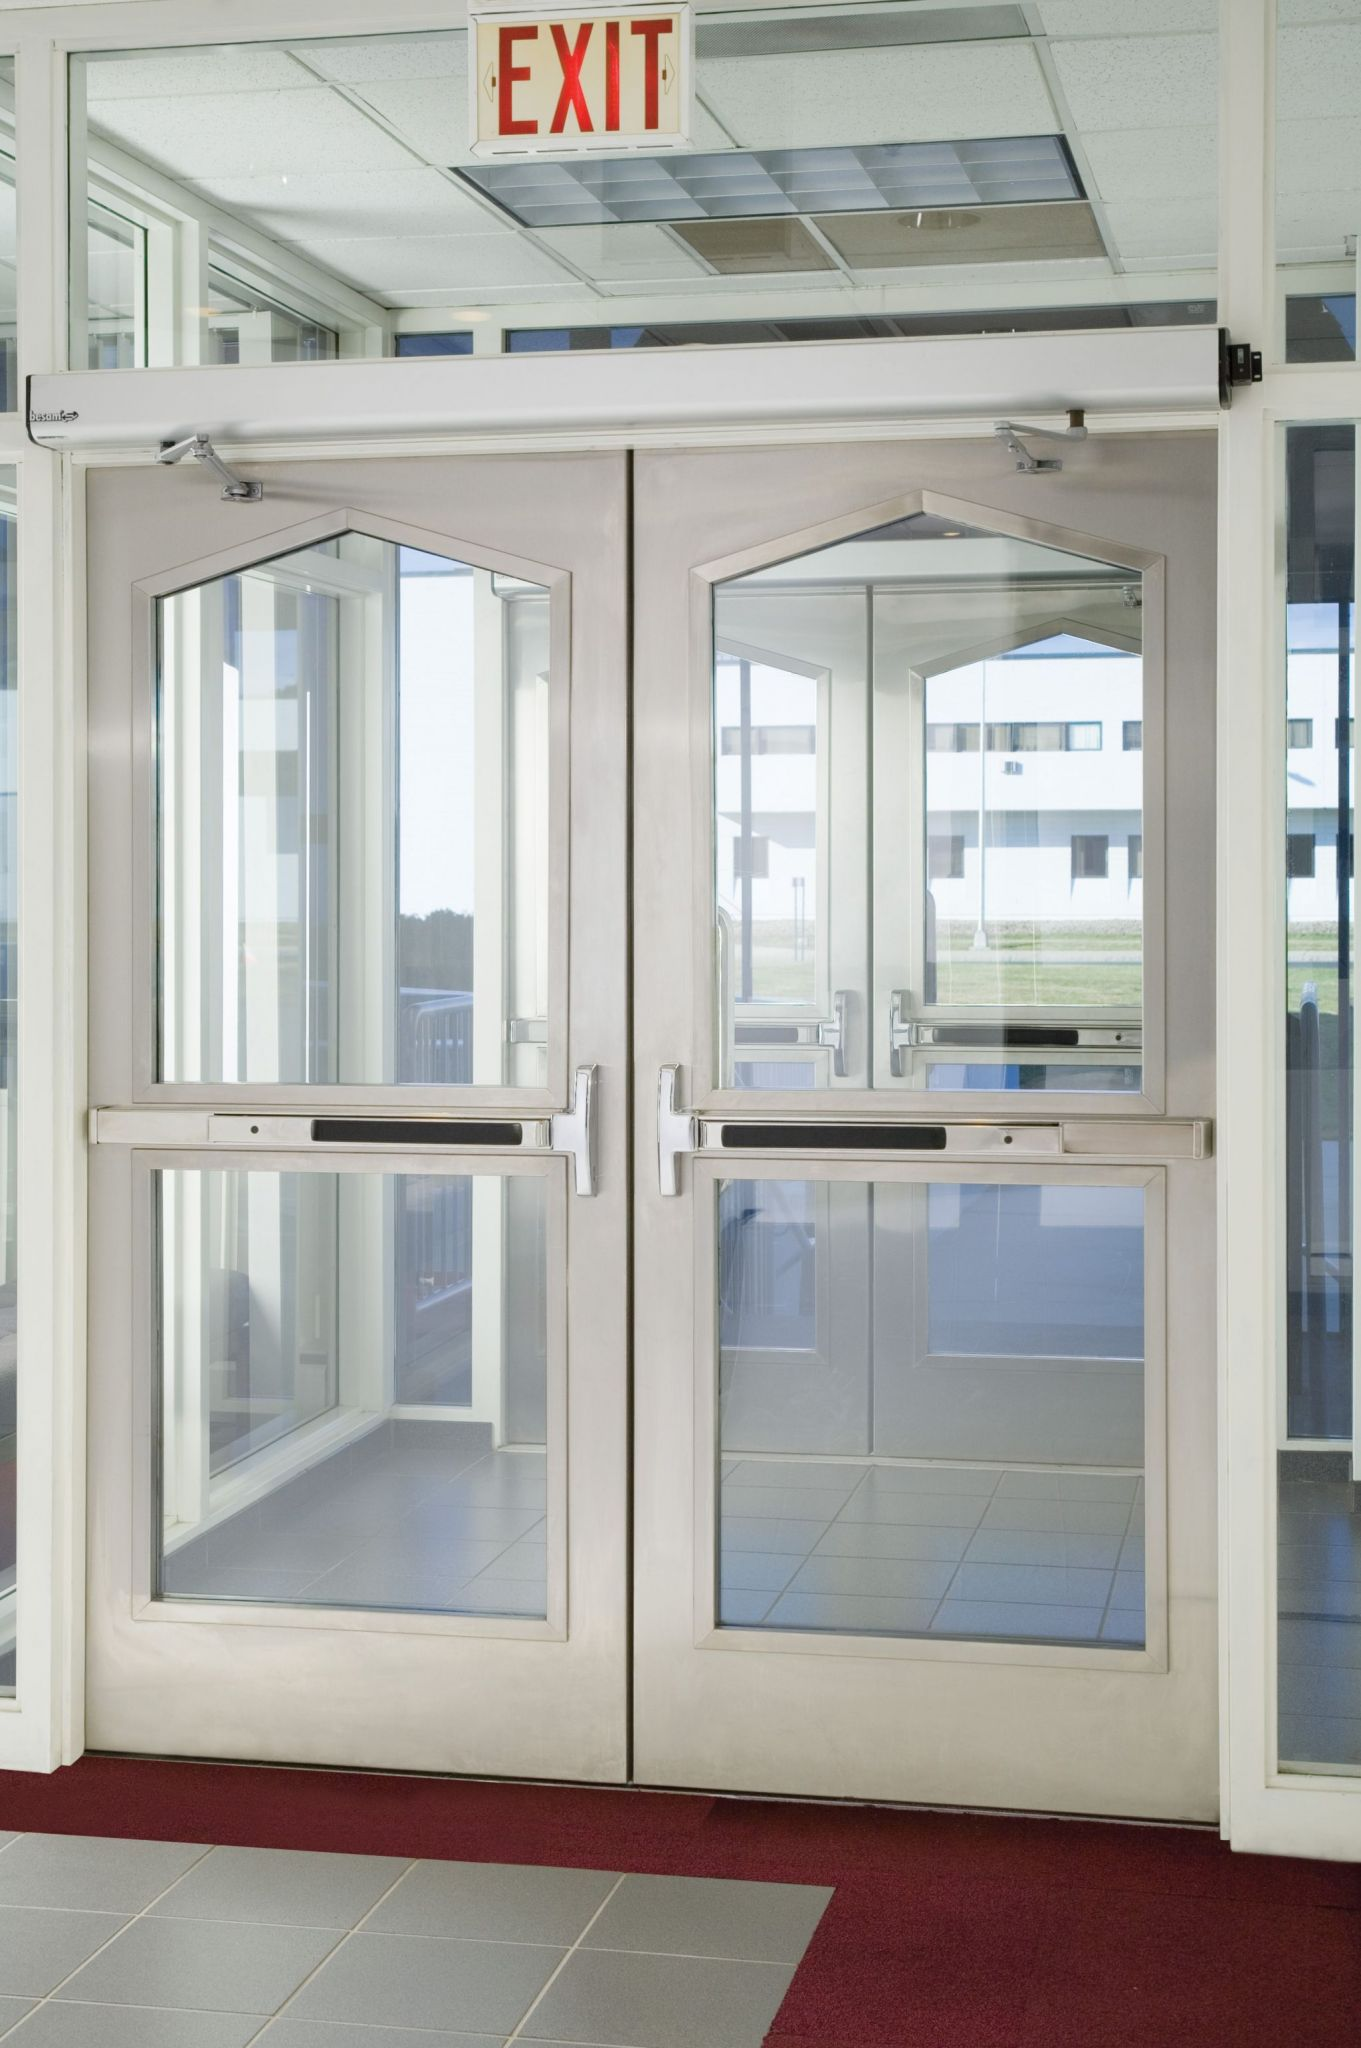 Exit devices on doors enable quick egress from buildings.